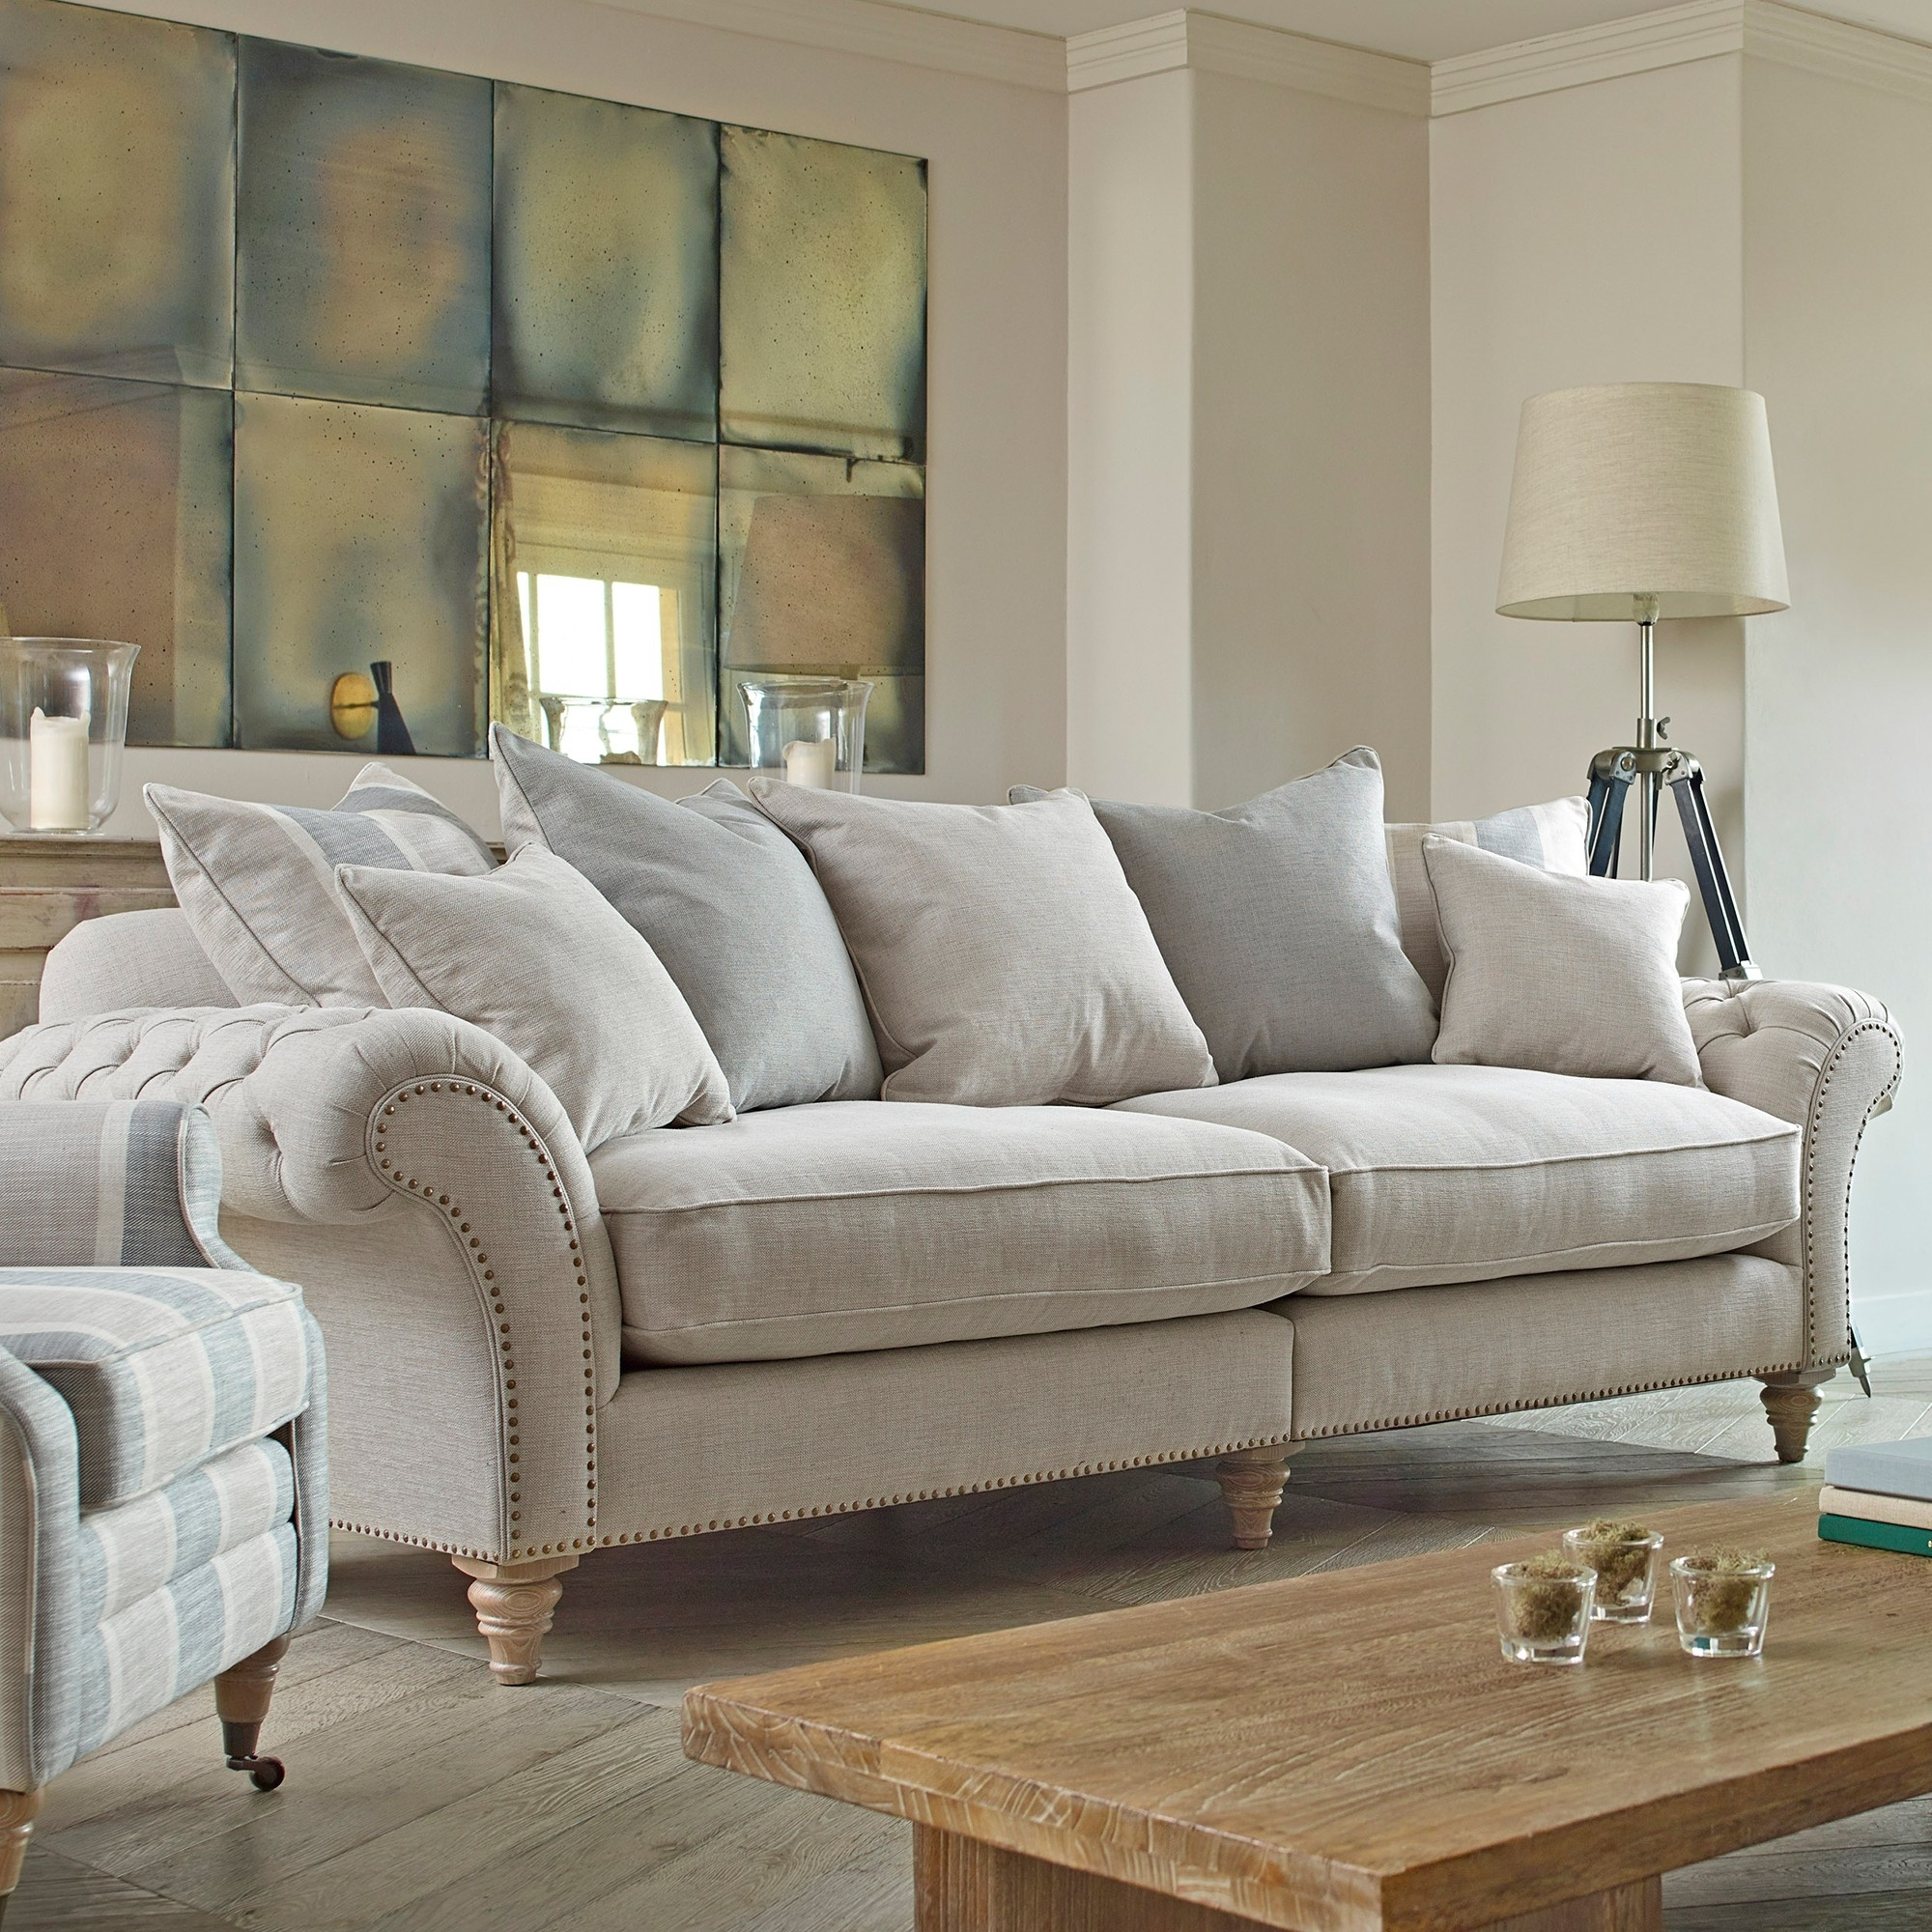 Apus Extra Large Sofa - Fabric Sofas - Cookes Furniture for Extra Large Sofas (Image 1 of 10)